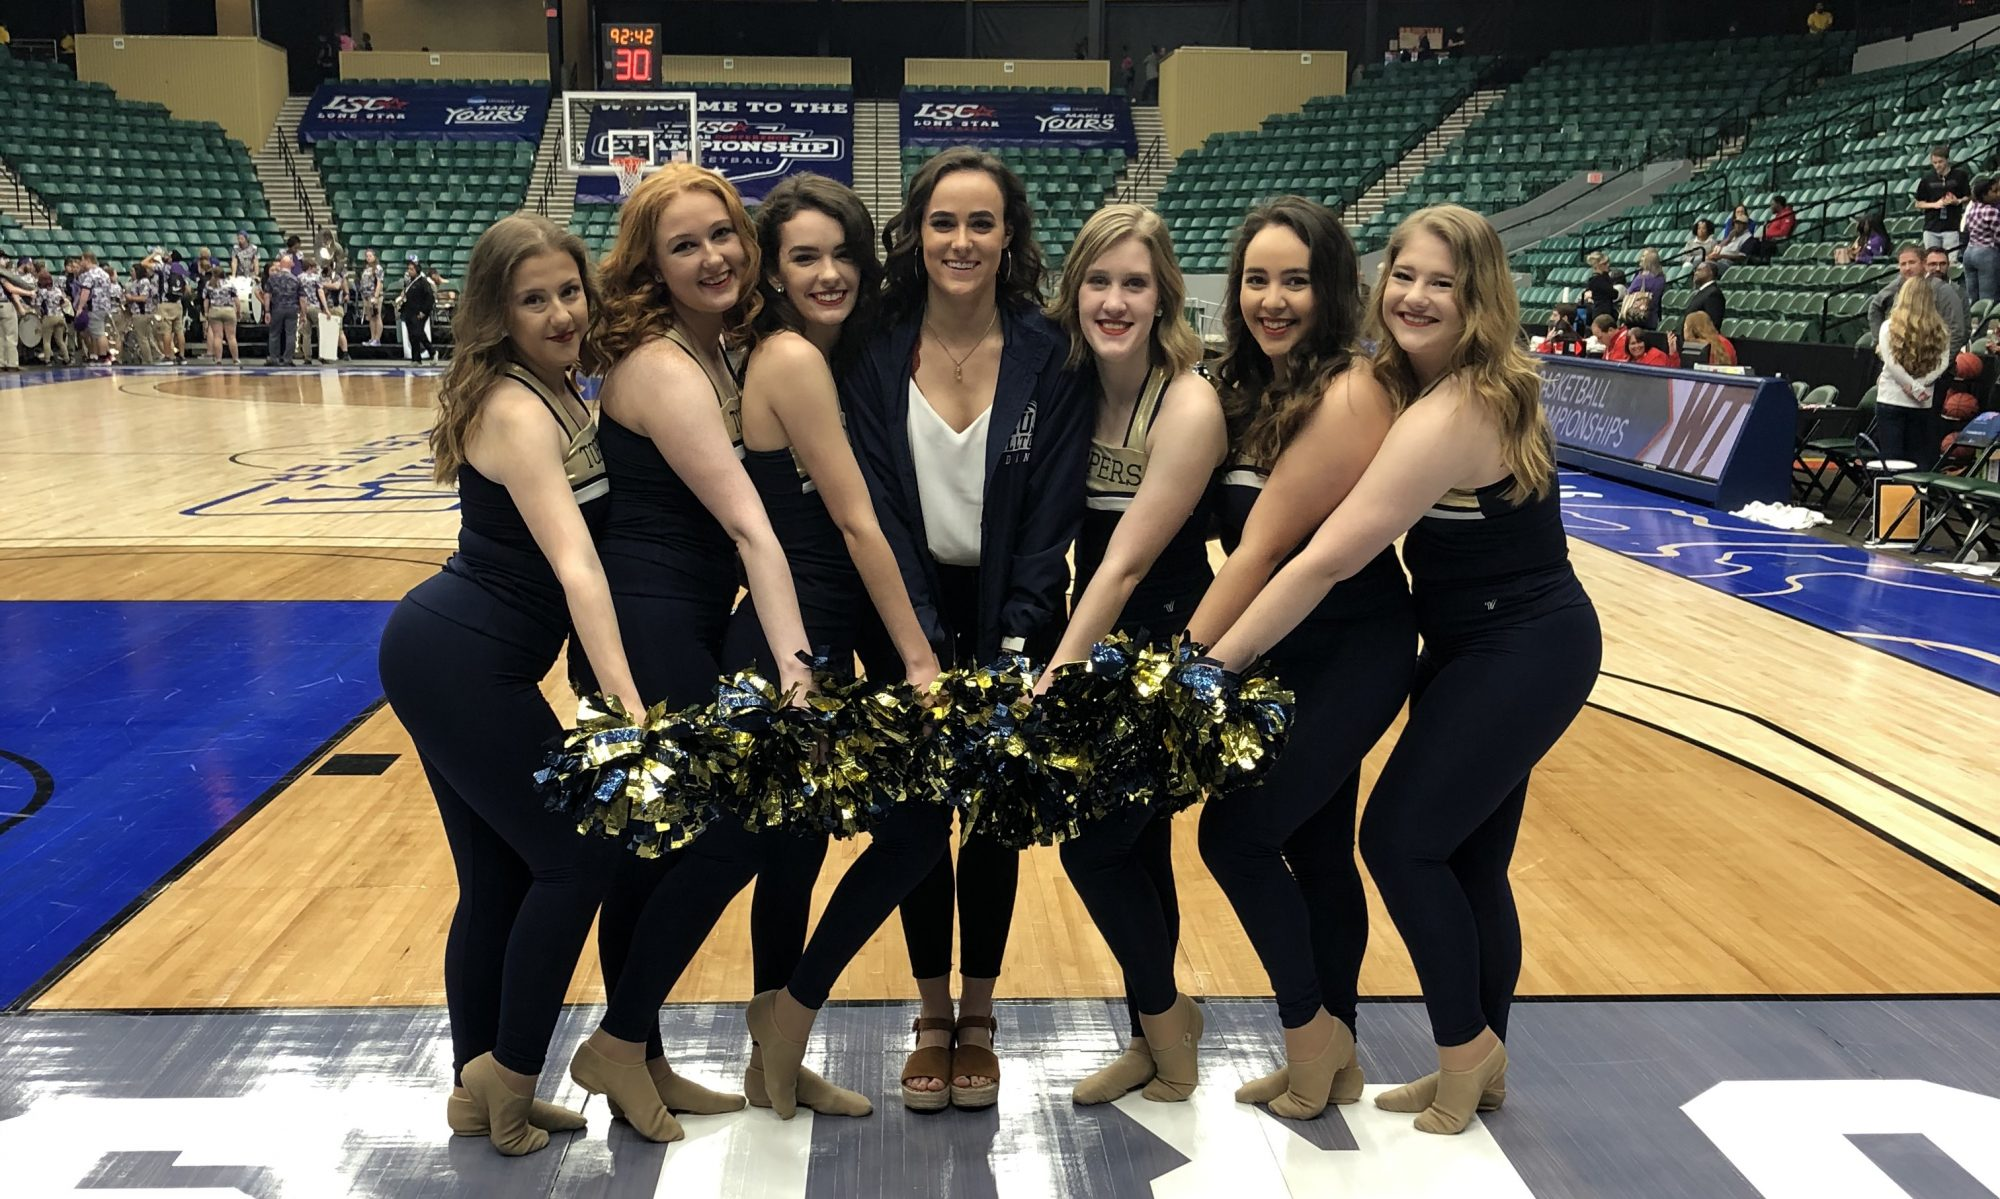 St. Edward's University Topperettes Dance Team